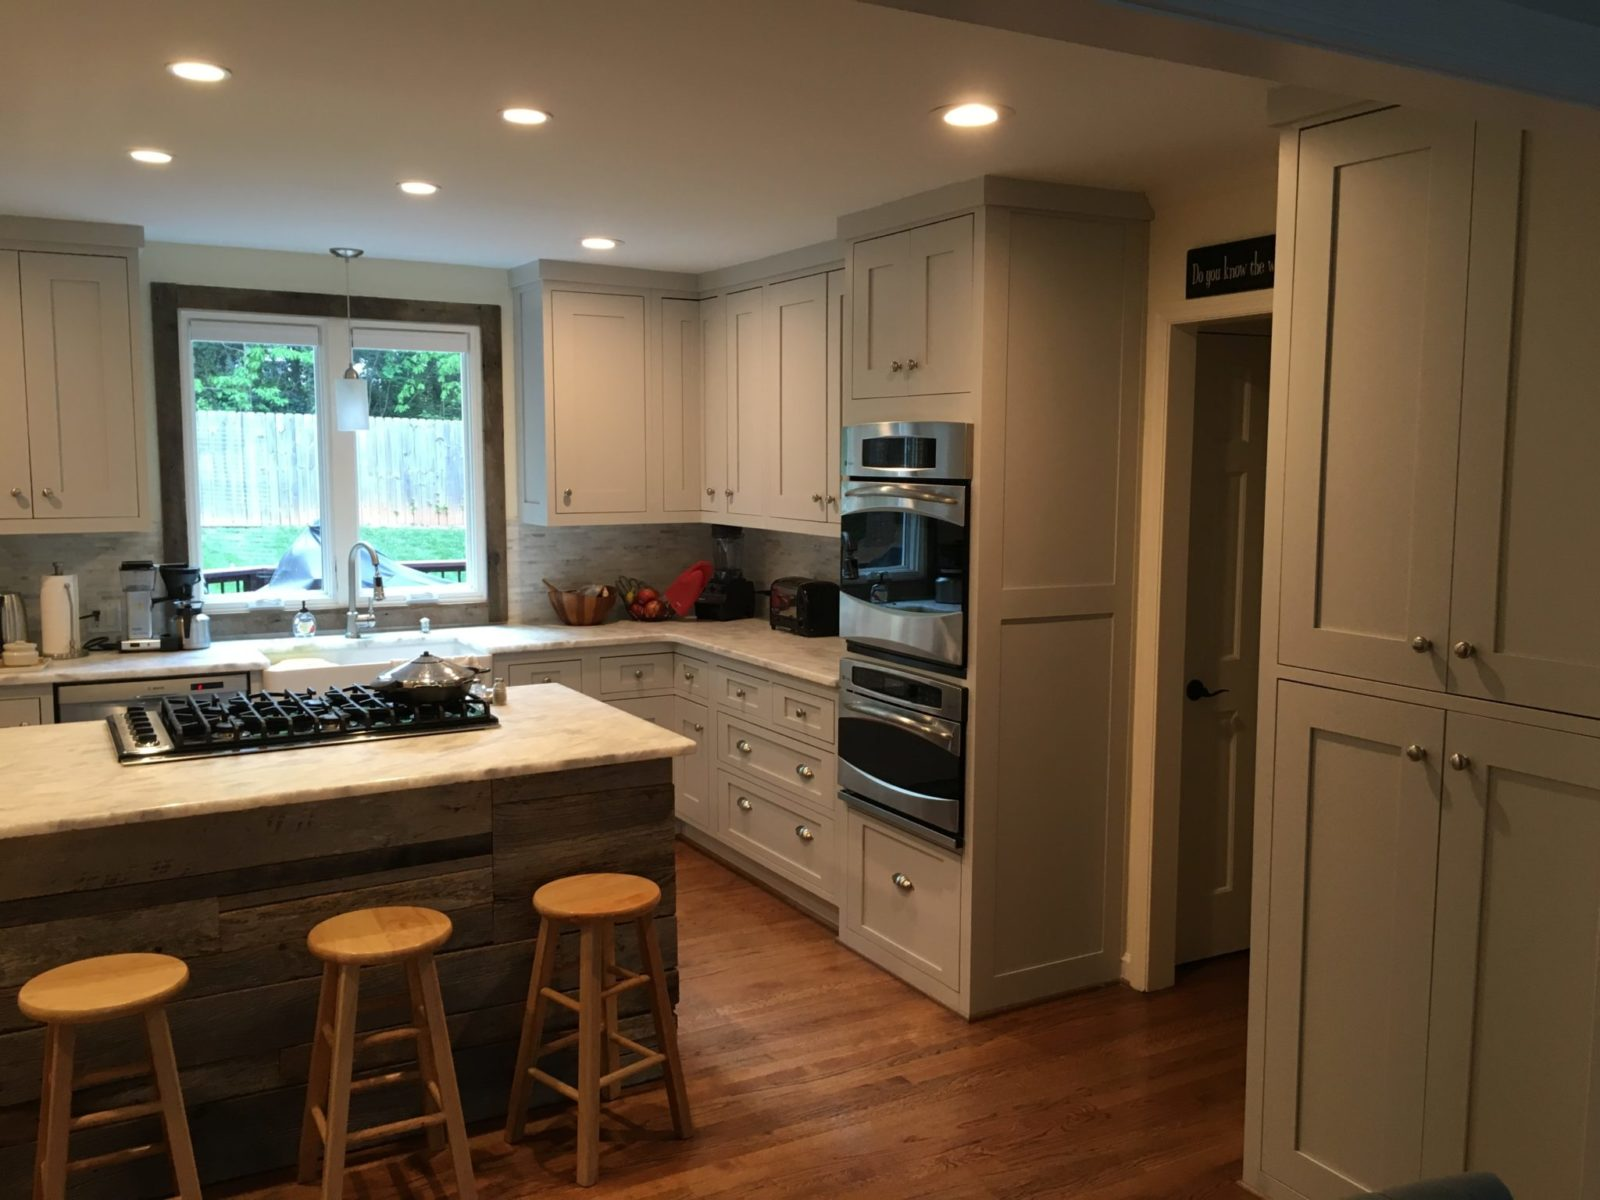 Custom Shaker style kitchen with reclaimed wood